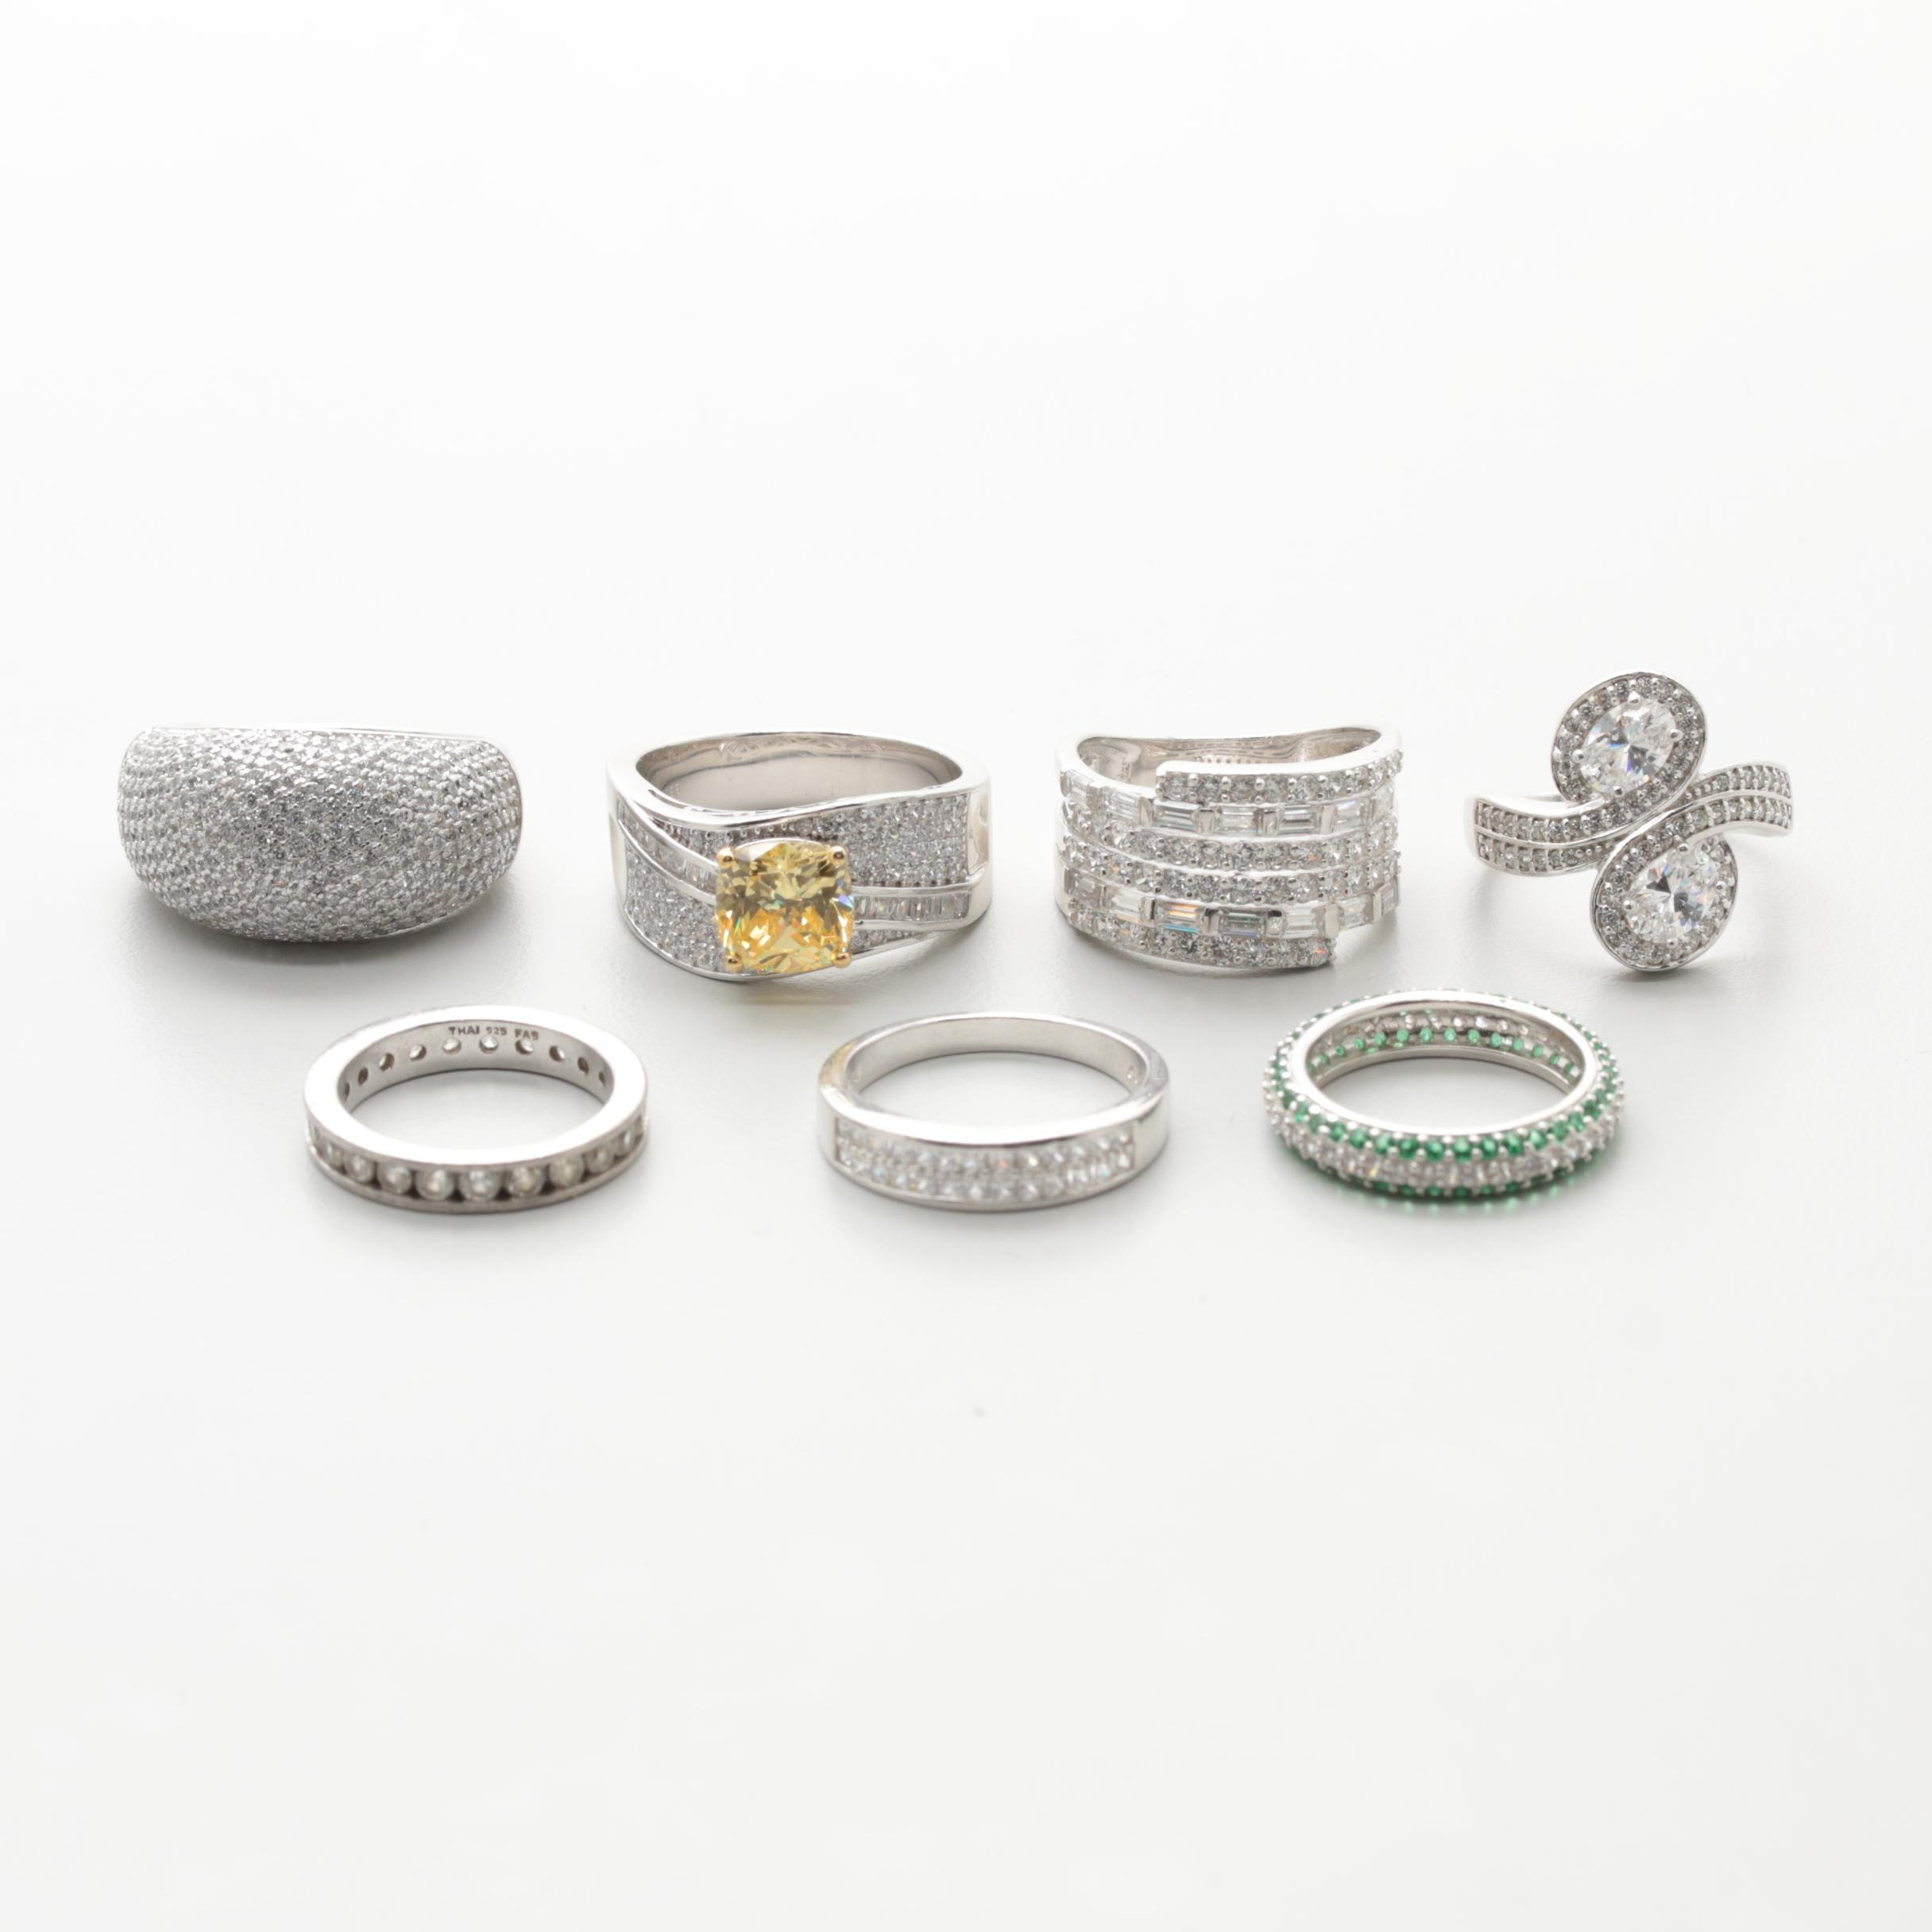 Assortment of Sterling Silver Cubic Zirconia Rings